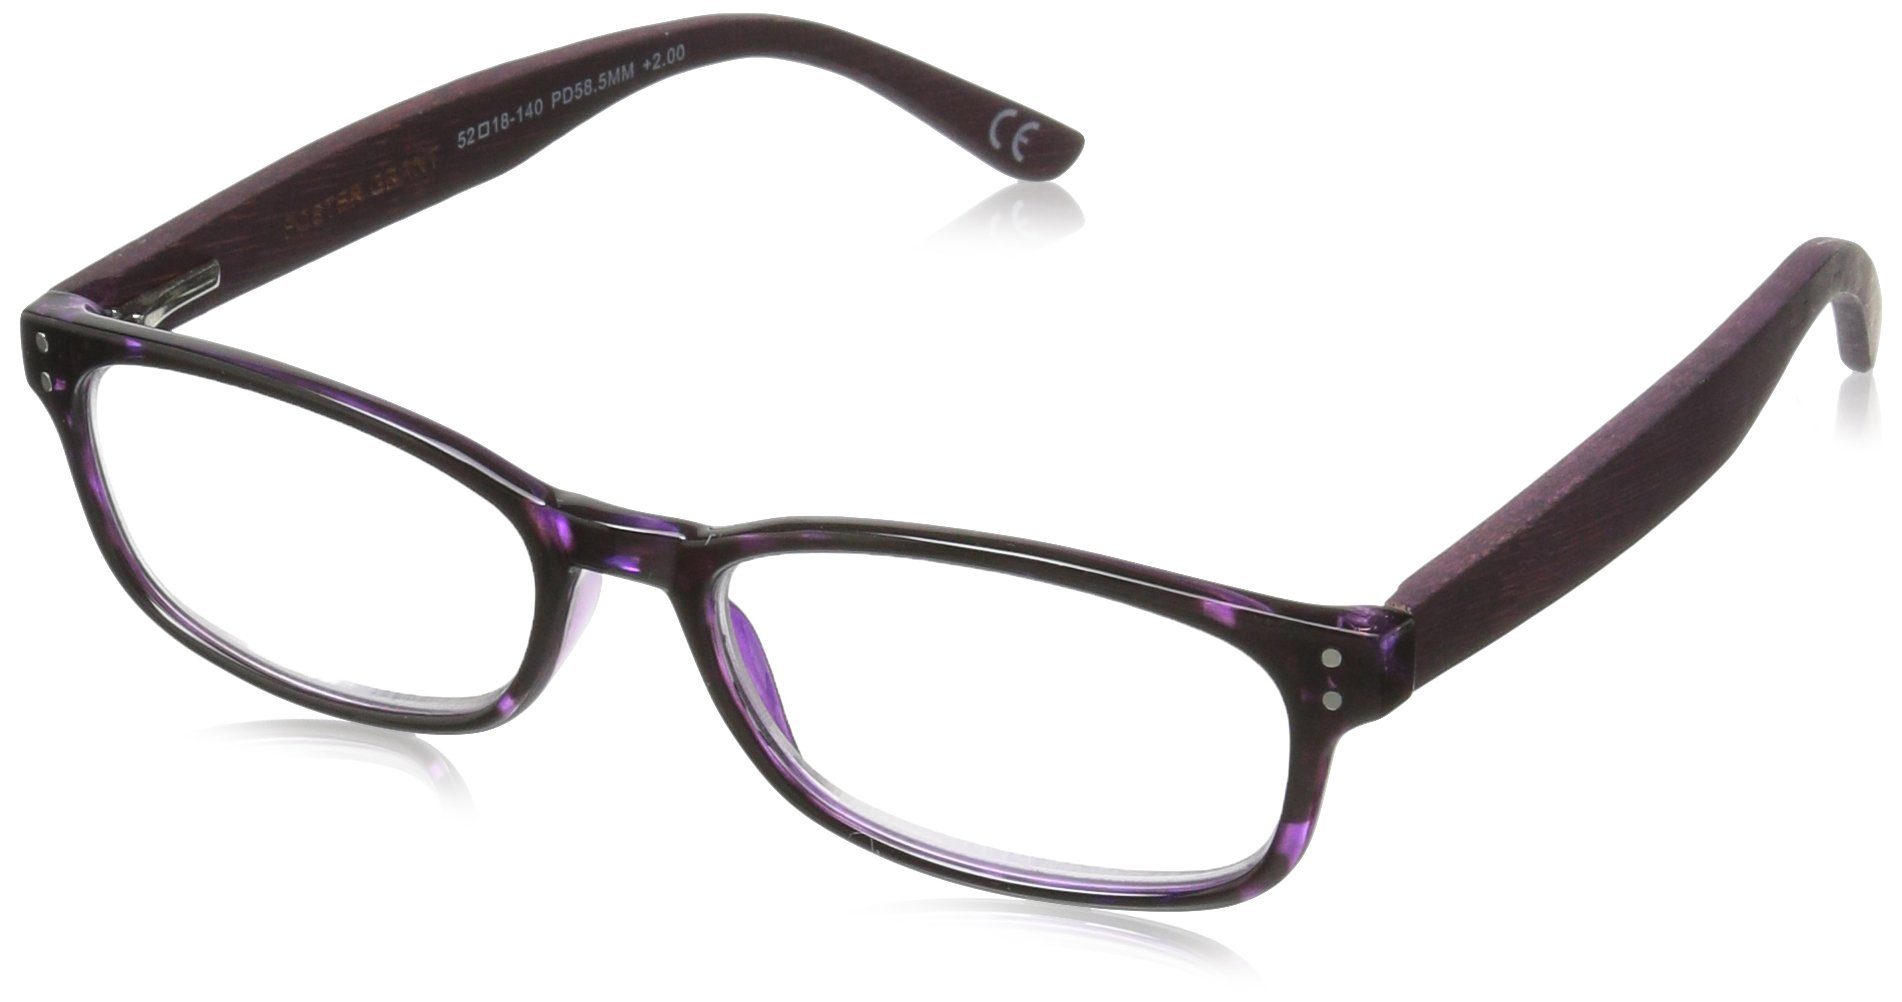 Foster Grant Women's Bernadette 1017561-125.COM Wayfarer Reading Glasses, Purple, 1.25